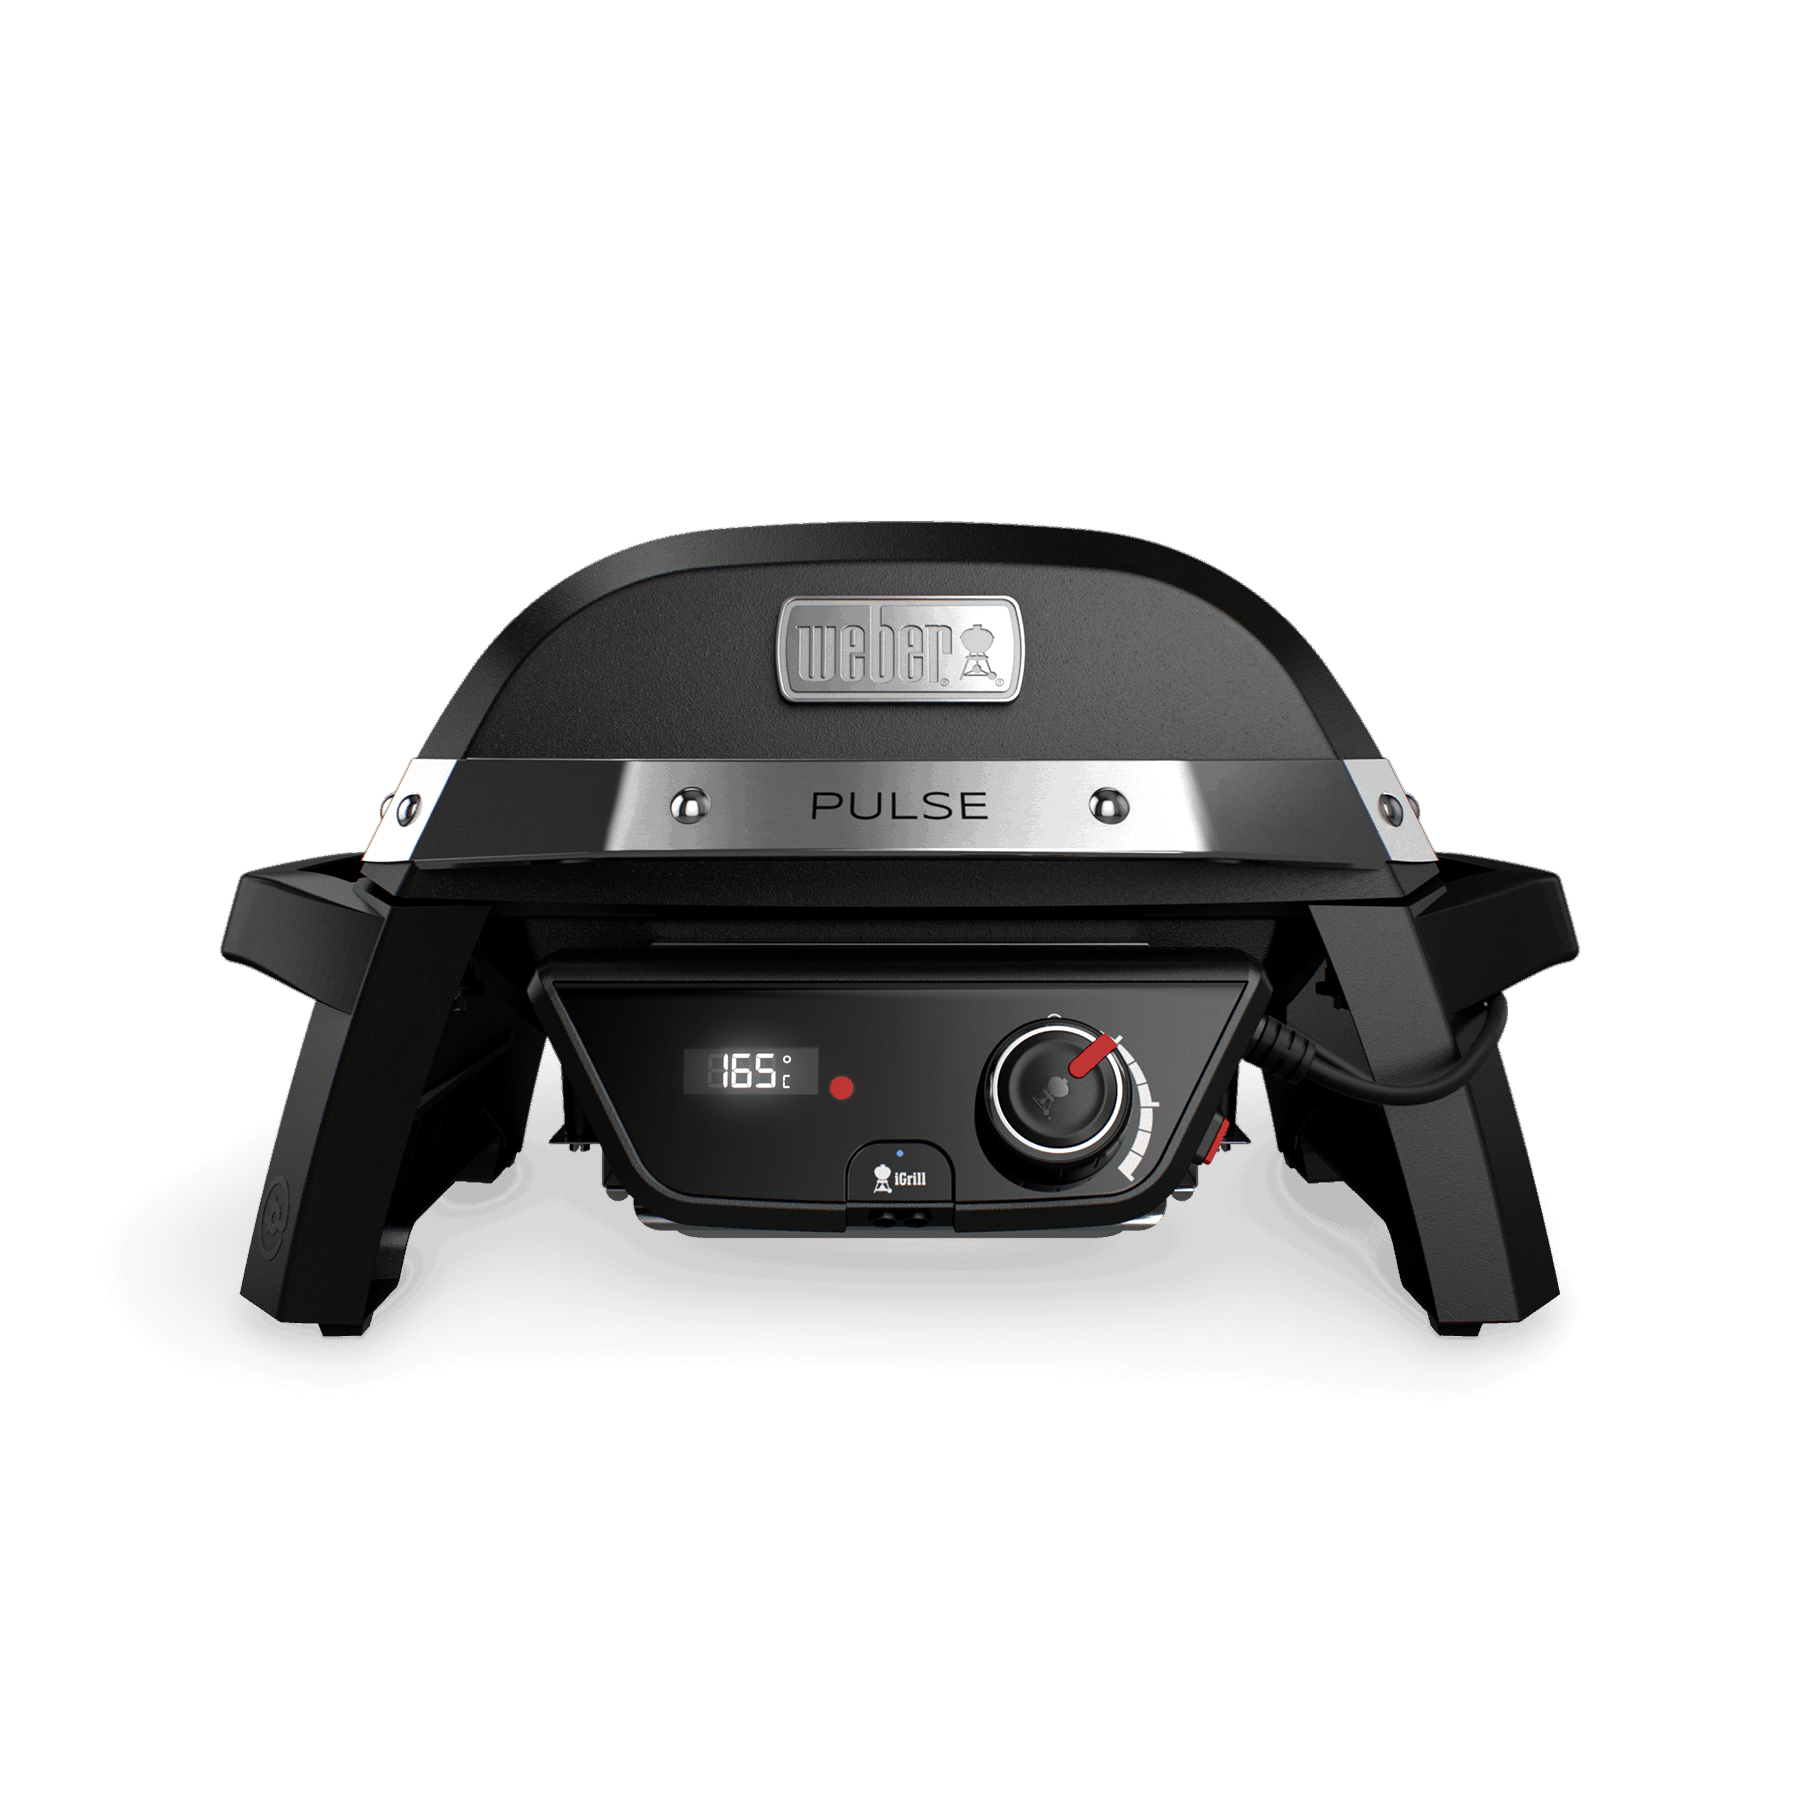 Pulse 1000 Elektrische barbecue